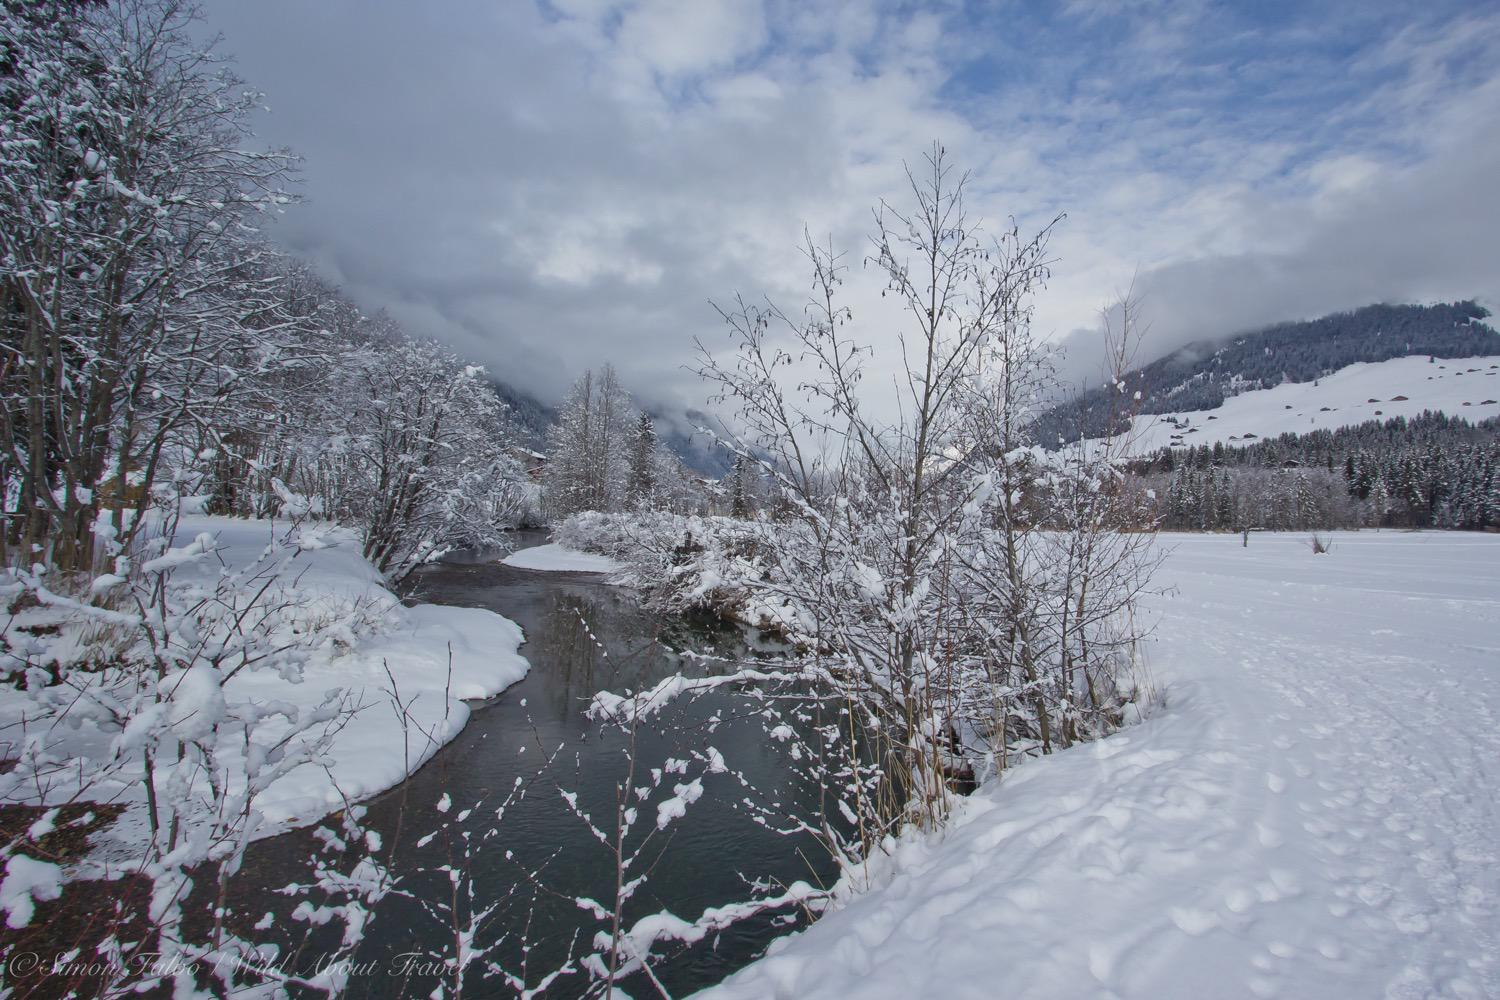 Switzerland, Lauenen in Winter